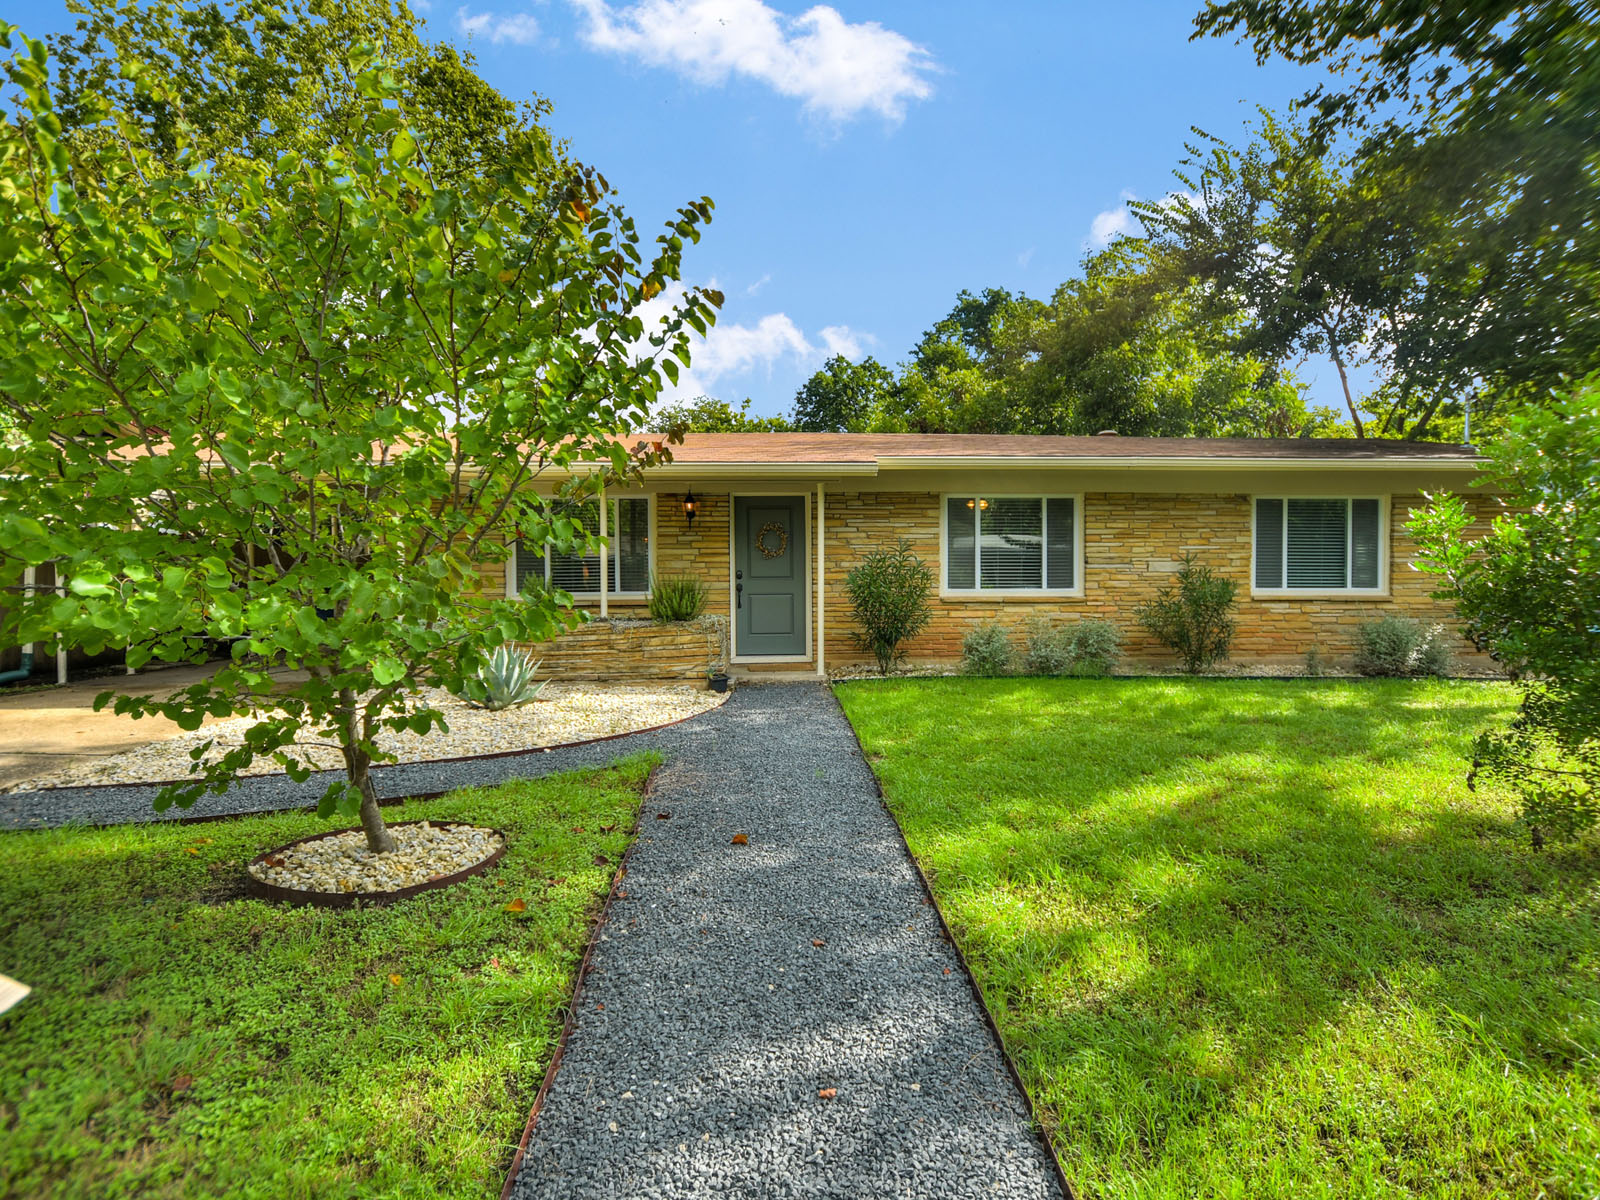 Single Family Home for Sale at Recently Remodeled and Conveniently Located 500 Irma Dr Austin, Texas 78752 United States